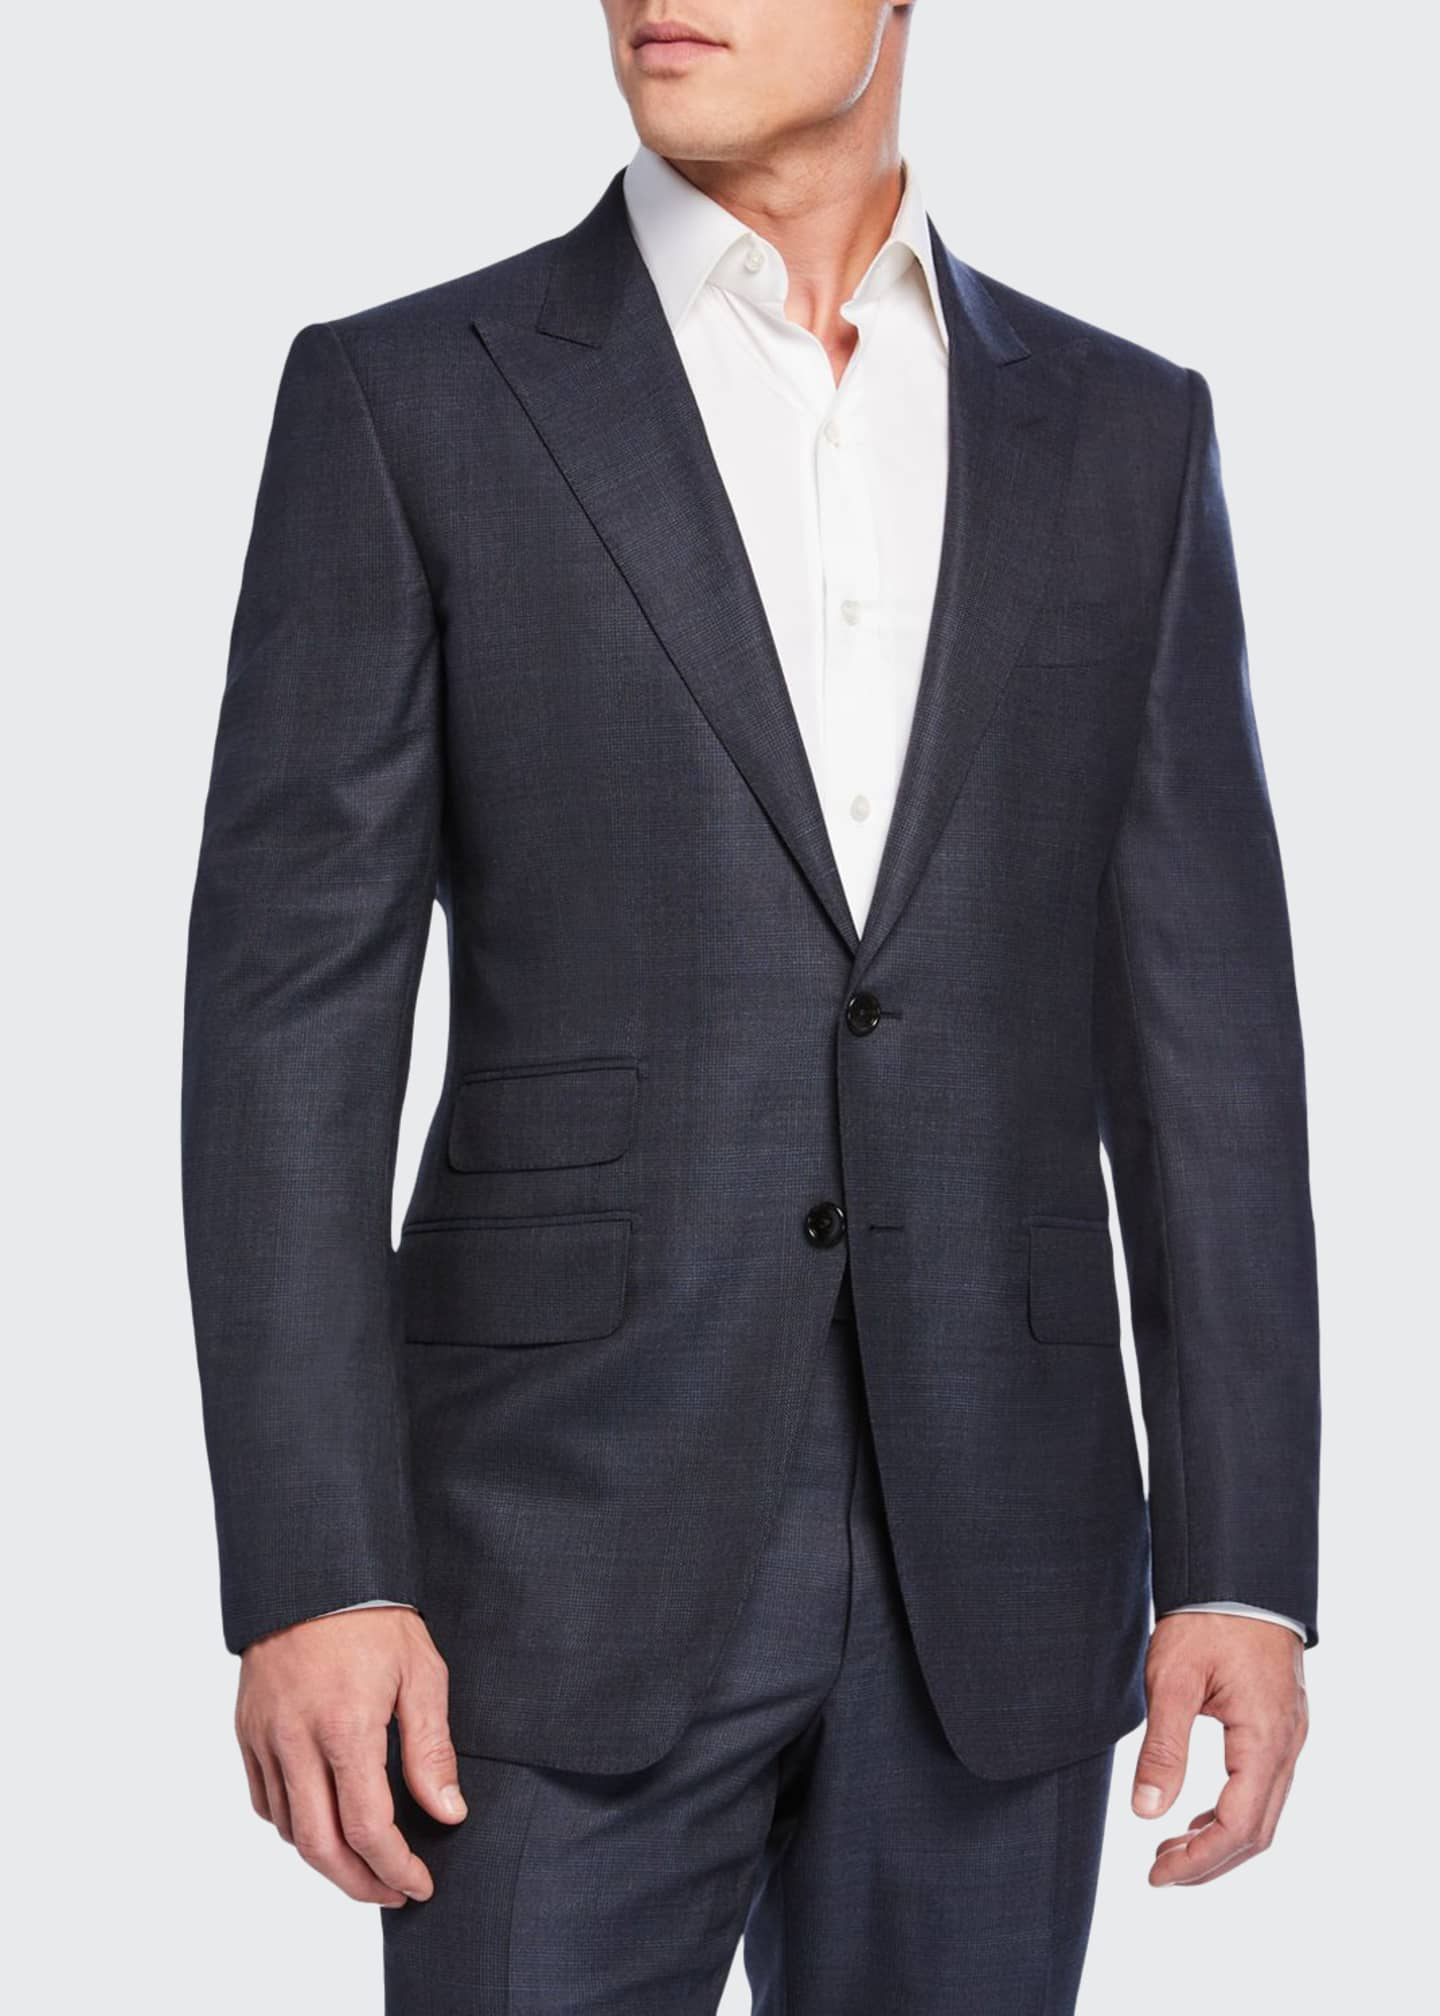 TOM FORD Men's O'Connor Check Wool Two-Piece Suit